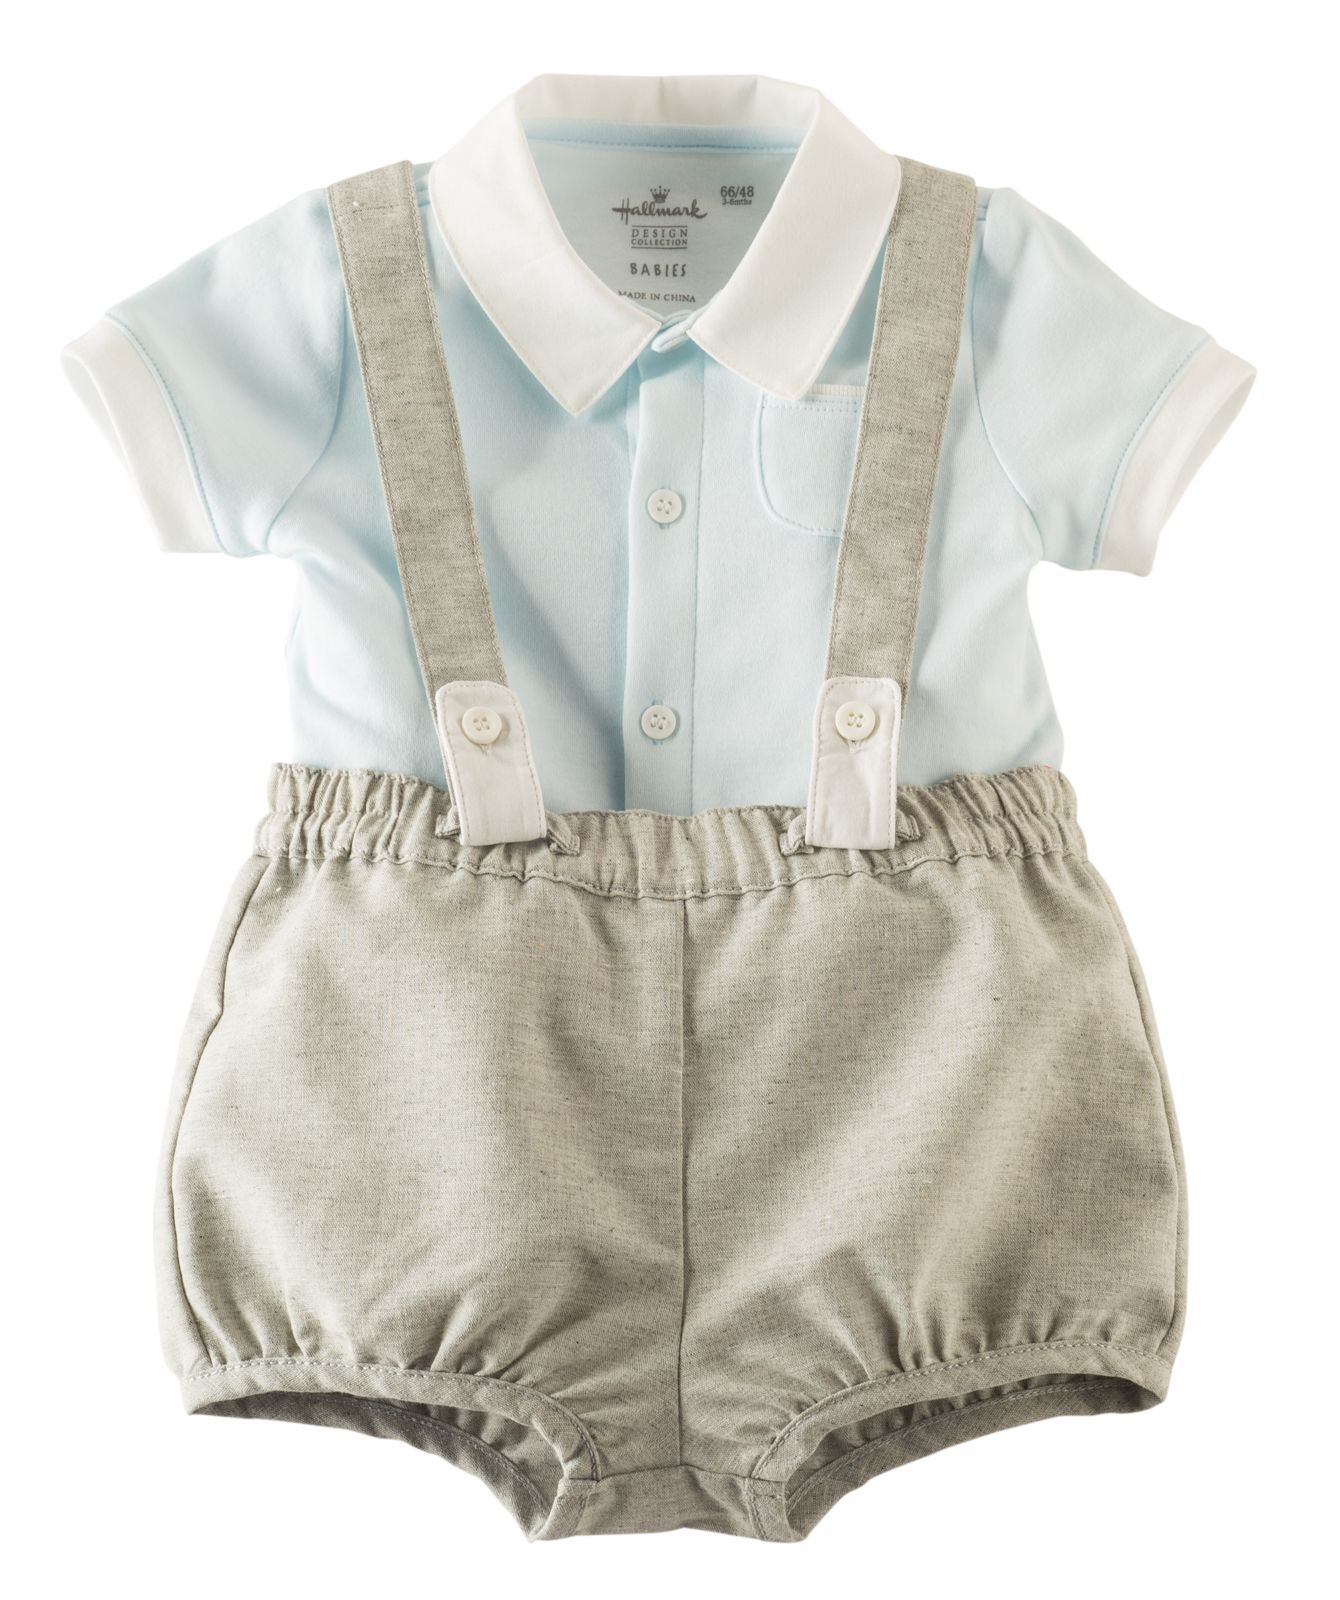 67b90b018714 Baby Boy Little Lad Suspender Romper Set